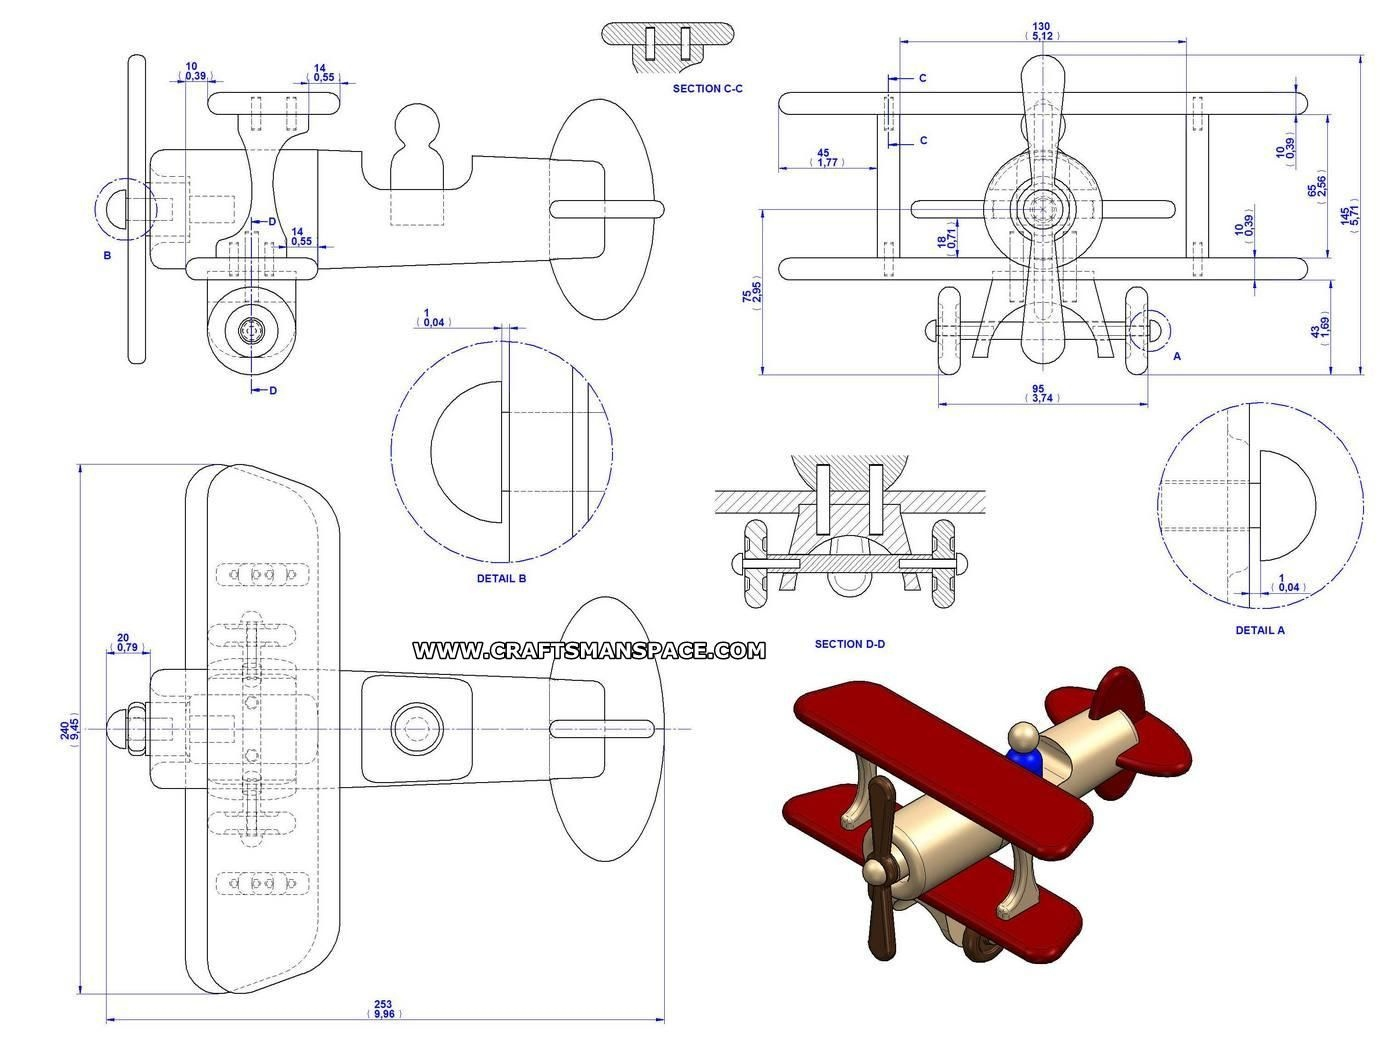 Wooden Toy Plans Free Pdf   Discover Woodworking Projects   Train - Free Wooden Toy Plans Printable